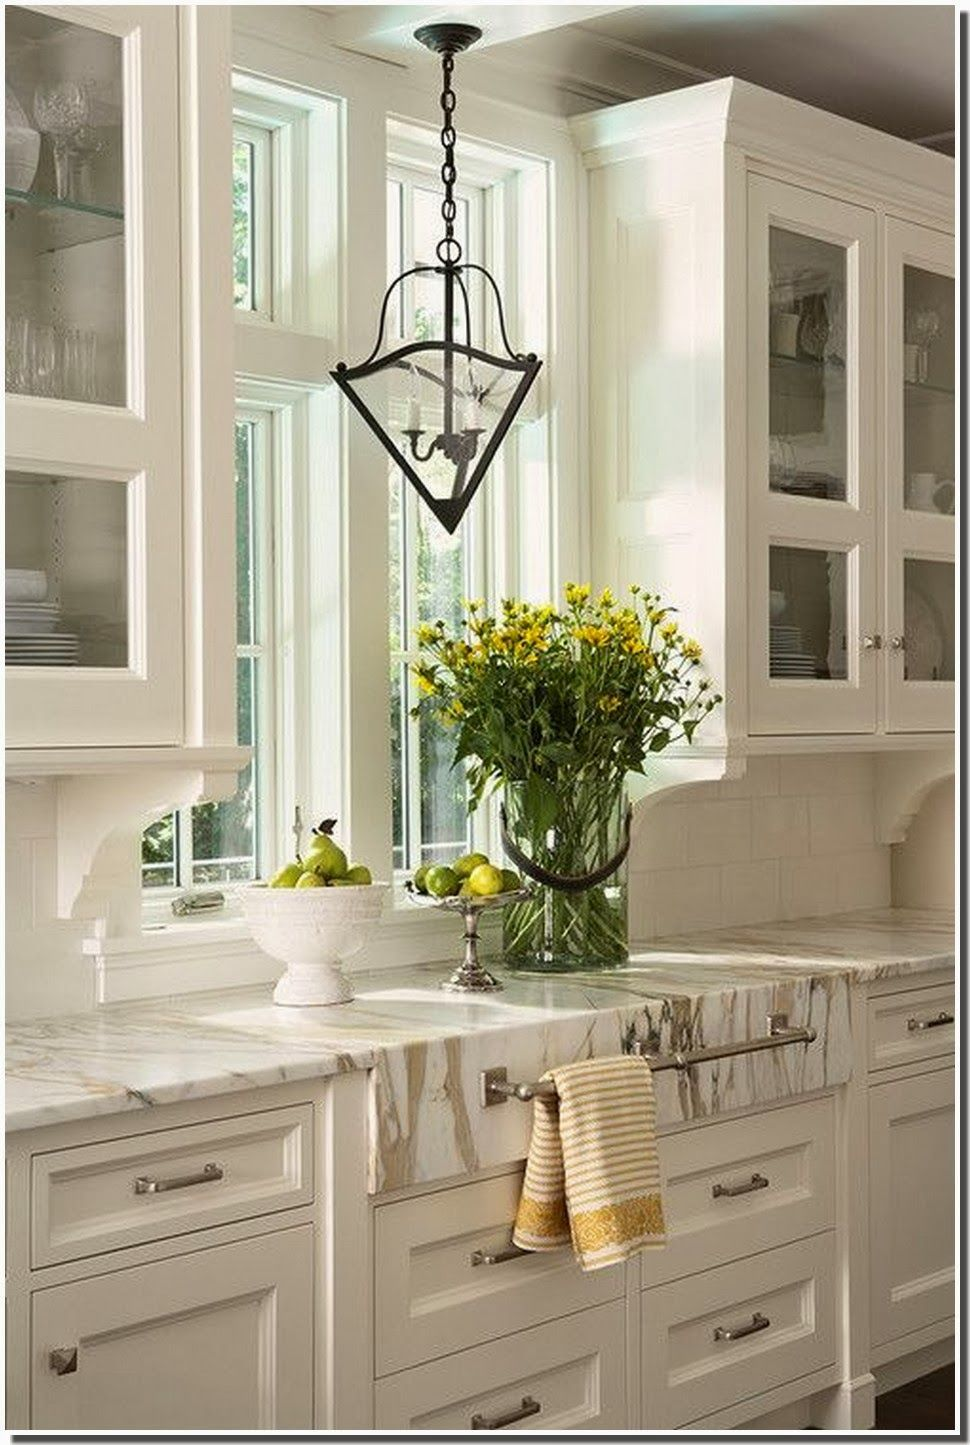 Pin by Clare Orsega on h o u s e Kitchen inspirations